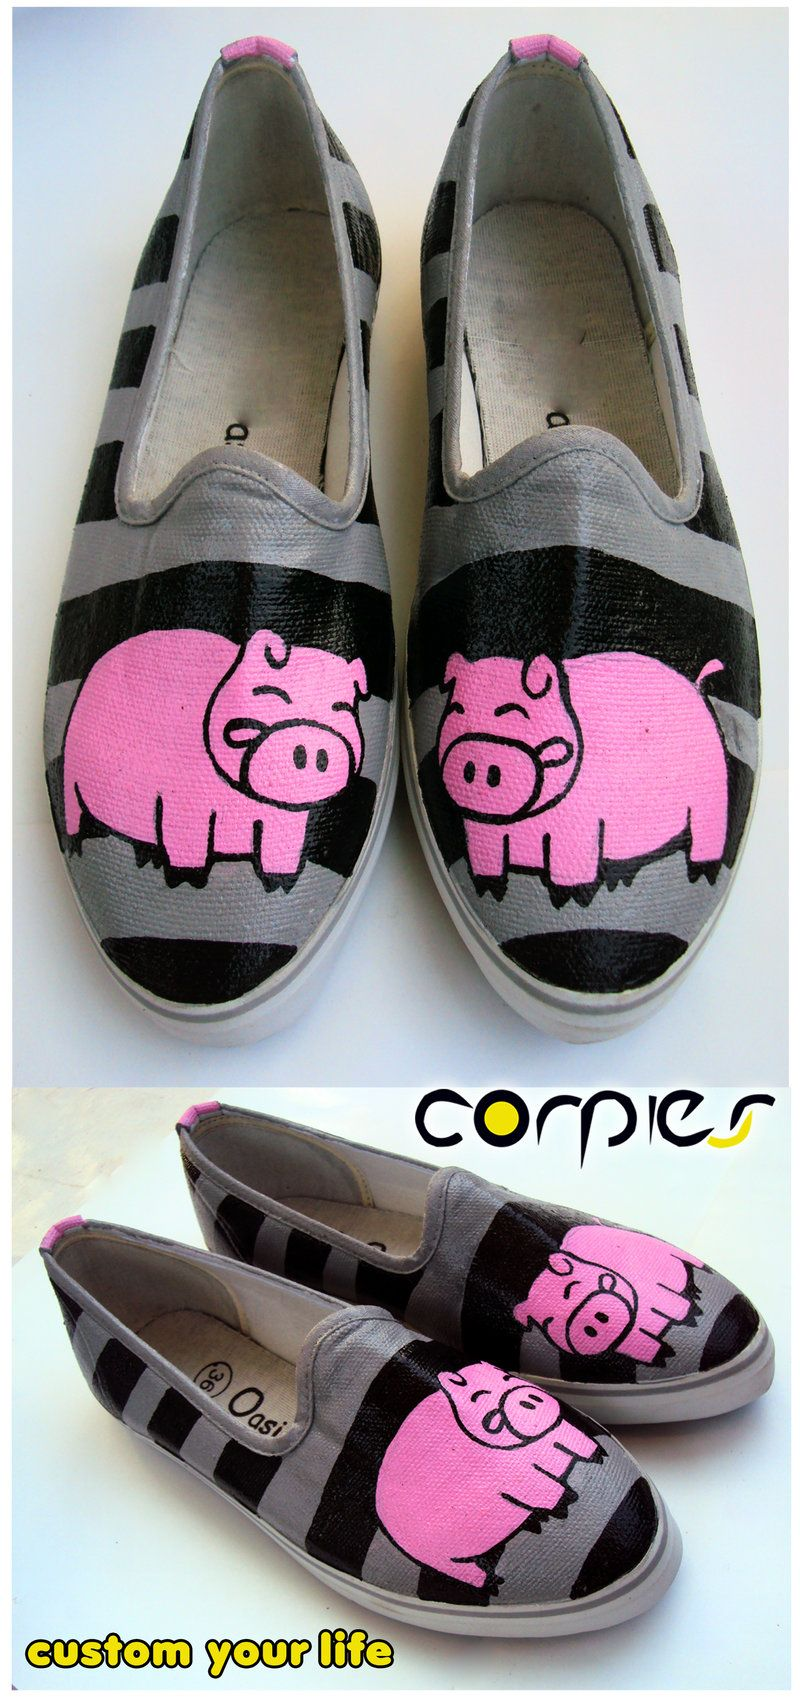 Pink Pig Shoes Who Wouldnt Want Them Pigs Pinterest Pet Lobor Lb A1312 Dial Swarovski Stainless